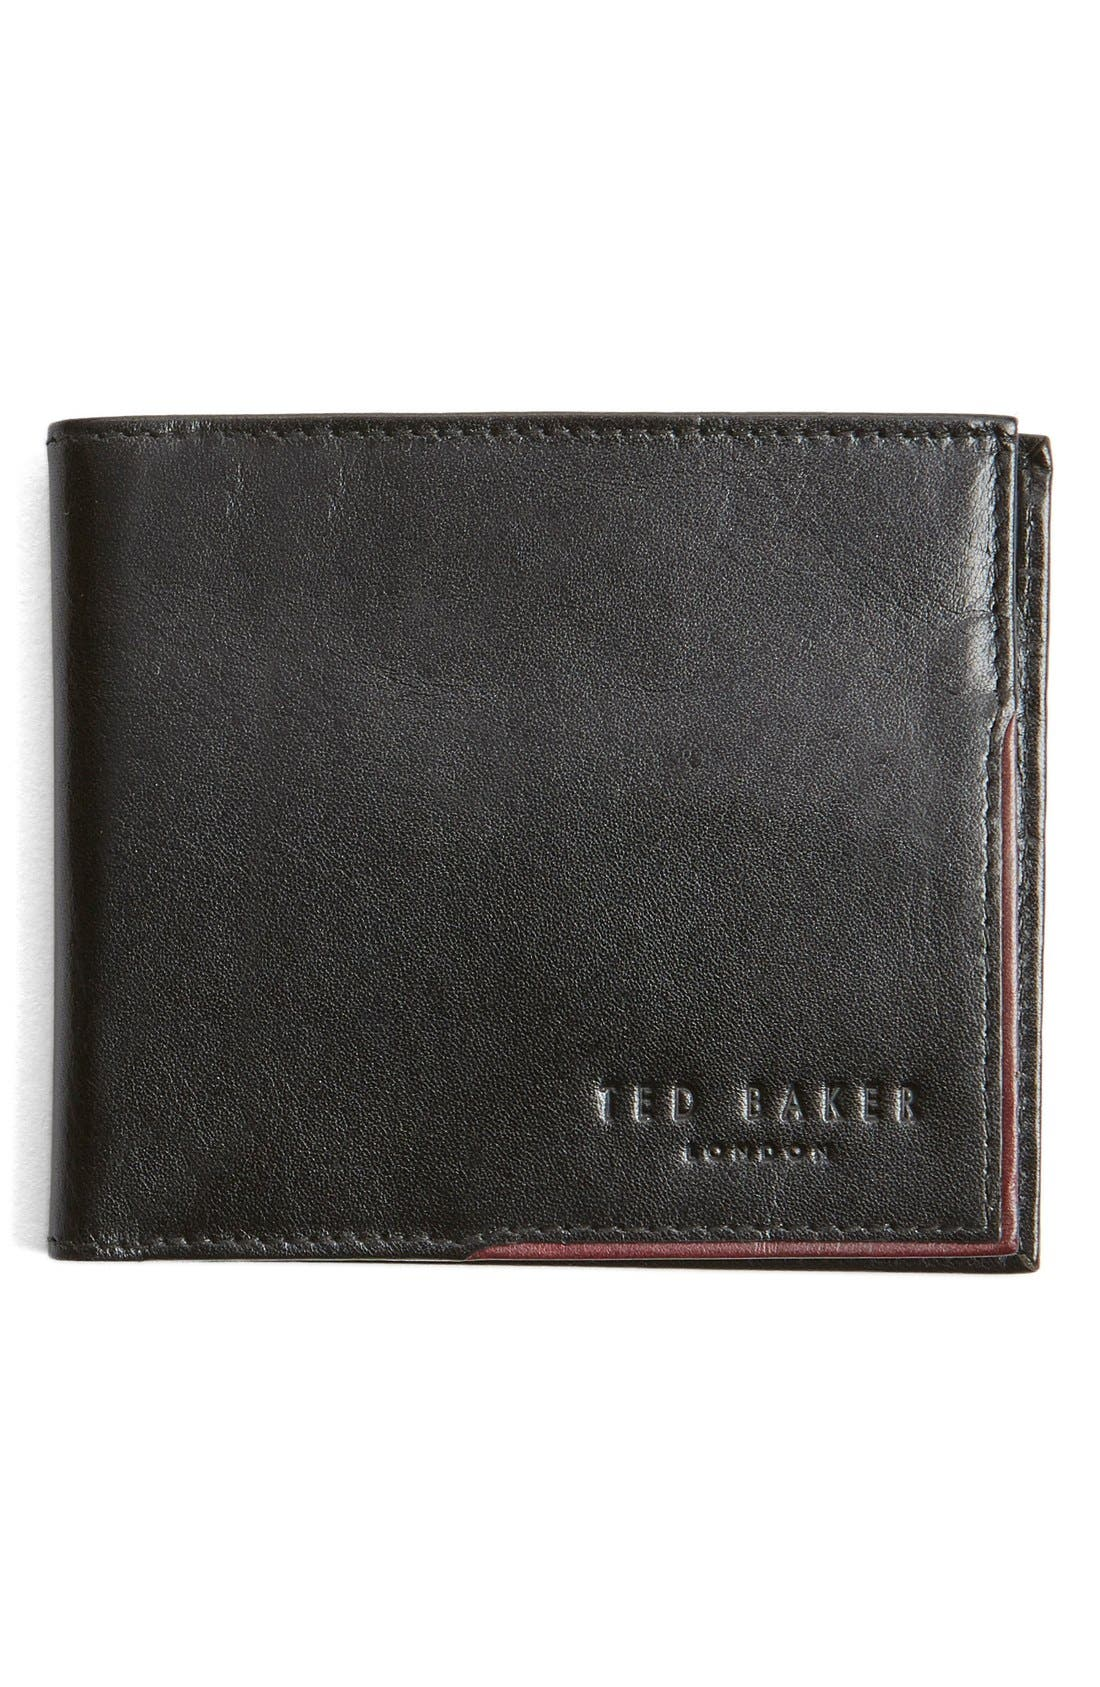 Main Image - Ted Baker London Carouse Bifold Leather Wallet